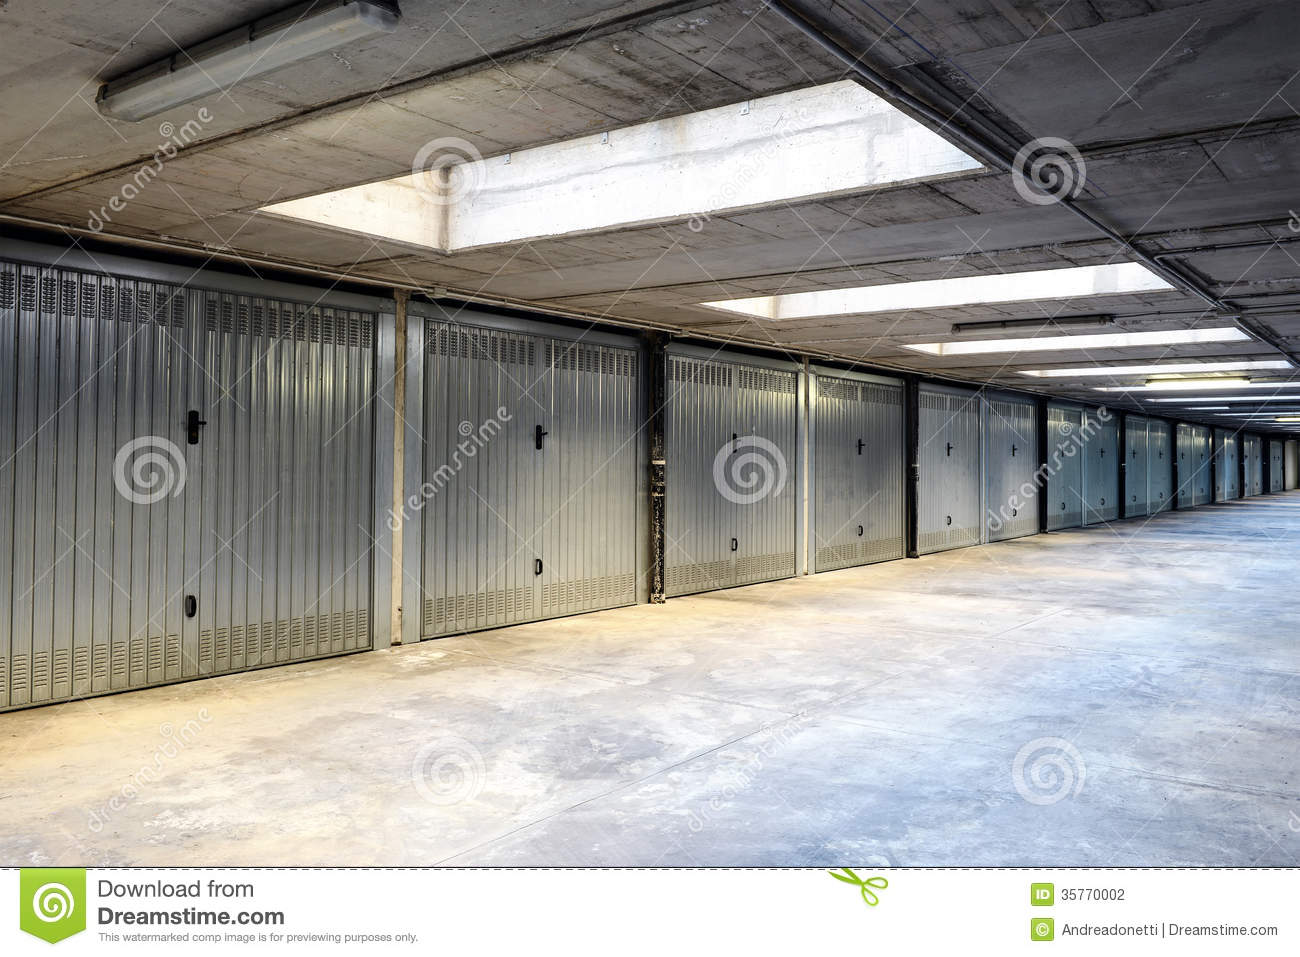 Commercial Steel Garages Inside : Row of internal garages or lock ups stock photography